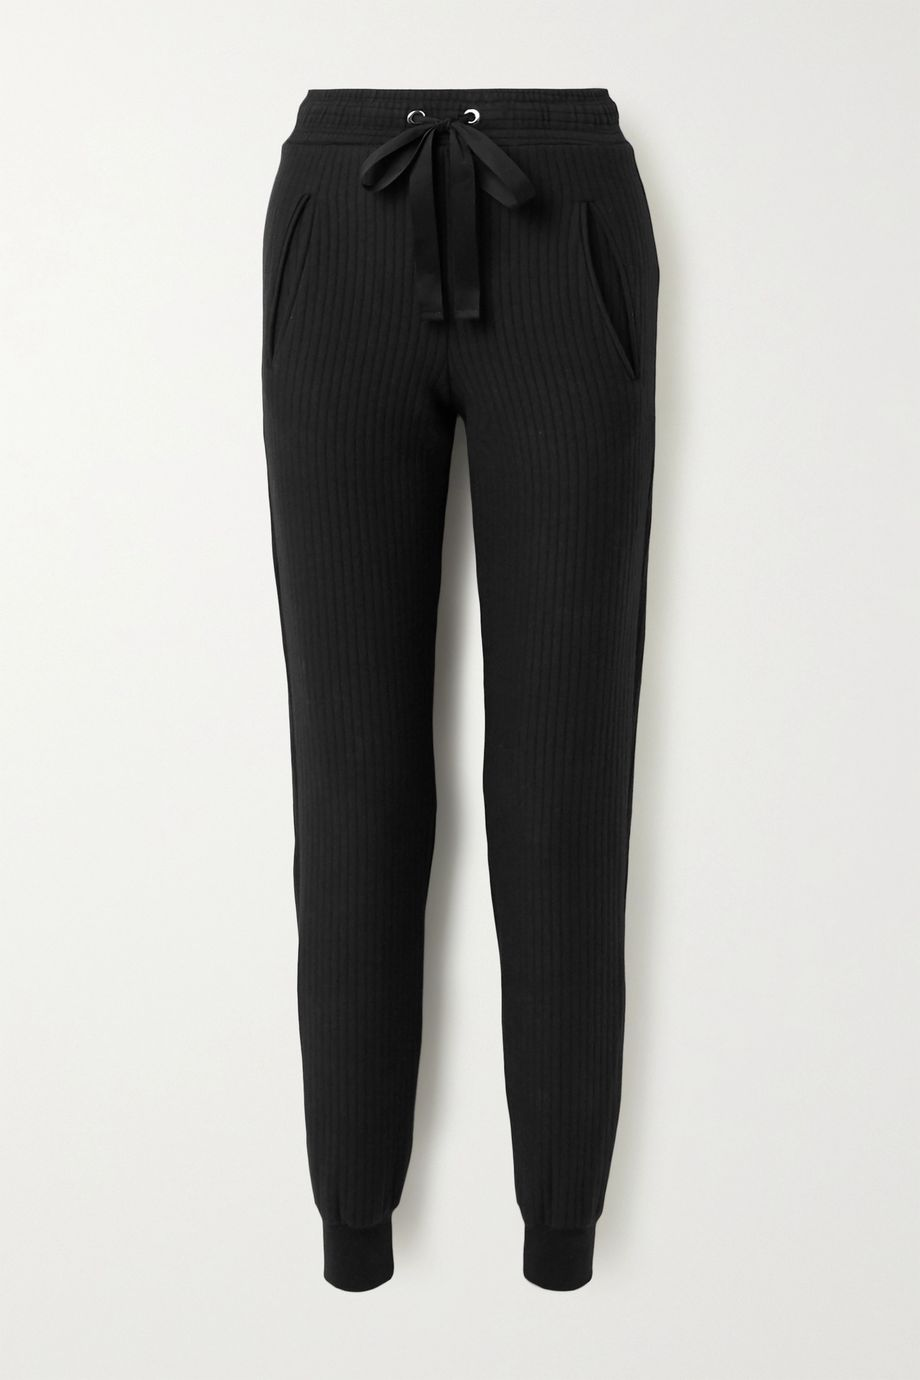 The Range Ripple ribbed stretch-cotton tapered track pants